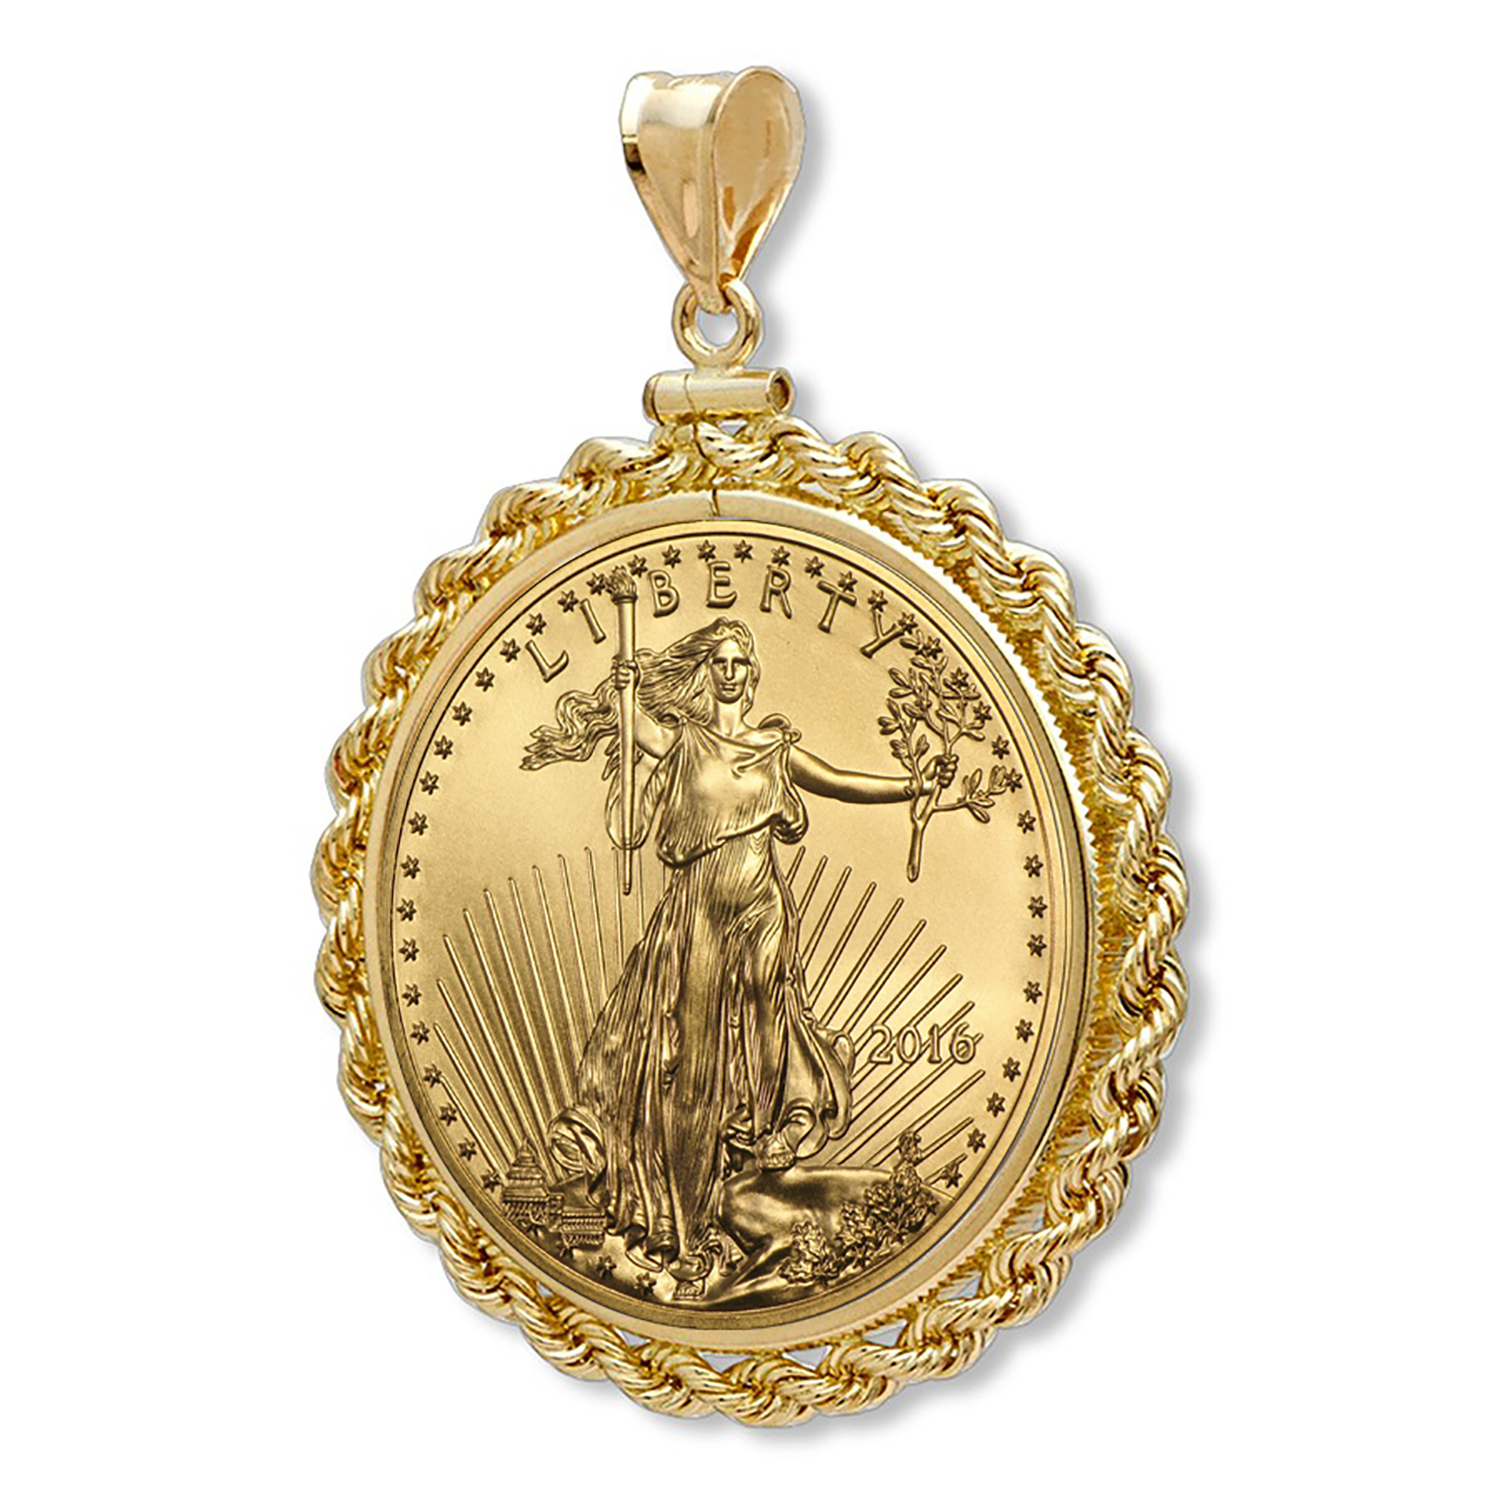 2016 1/2 oz Gold Eagle Pendant (Rope-ScrewTop Bezel)